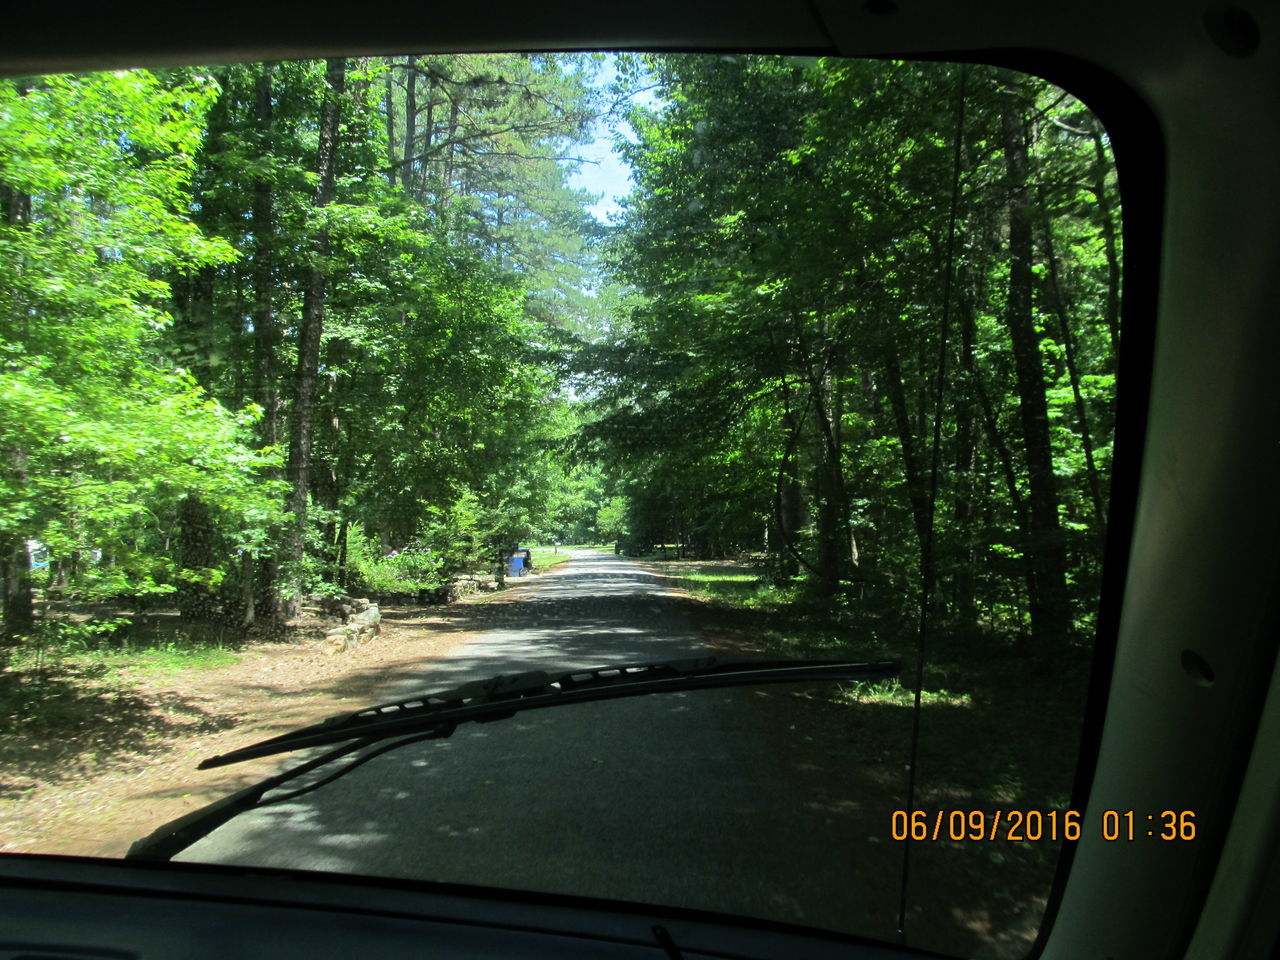 car, transportation, tree, land vehicle, mode of transport, windshield, window, day, car interior, no people, nature, outdoors